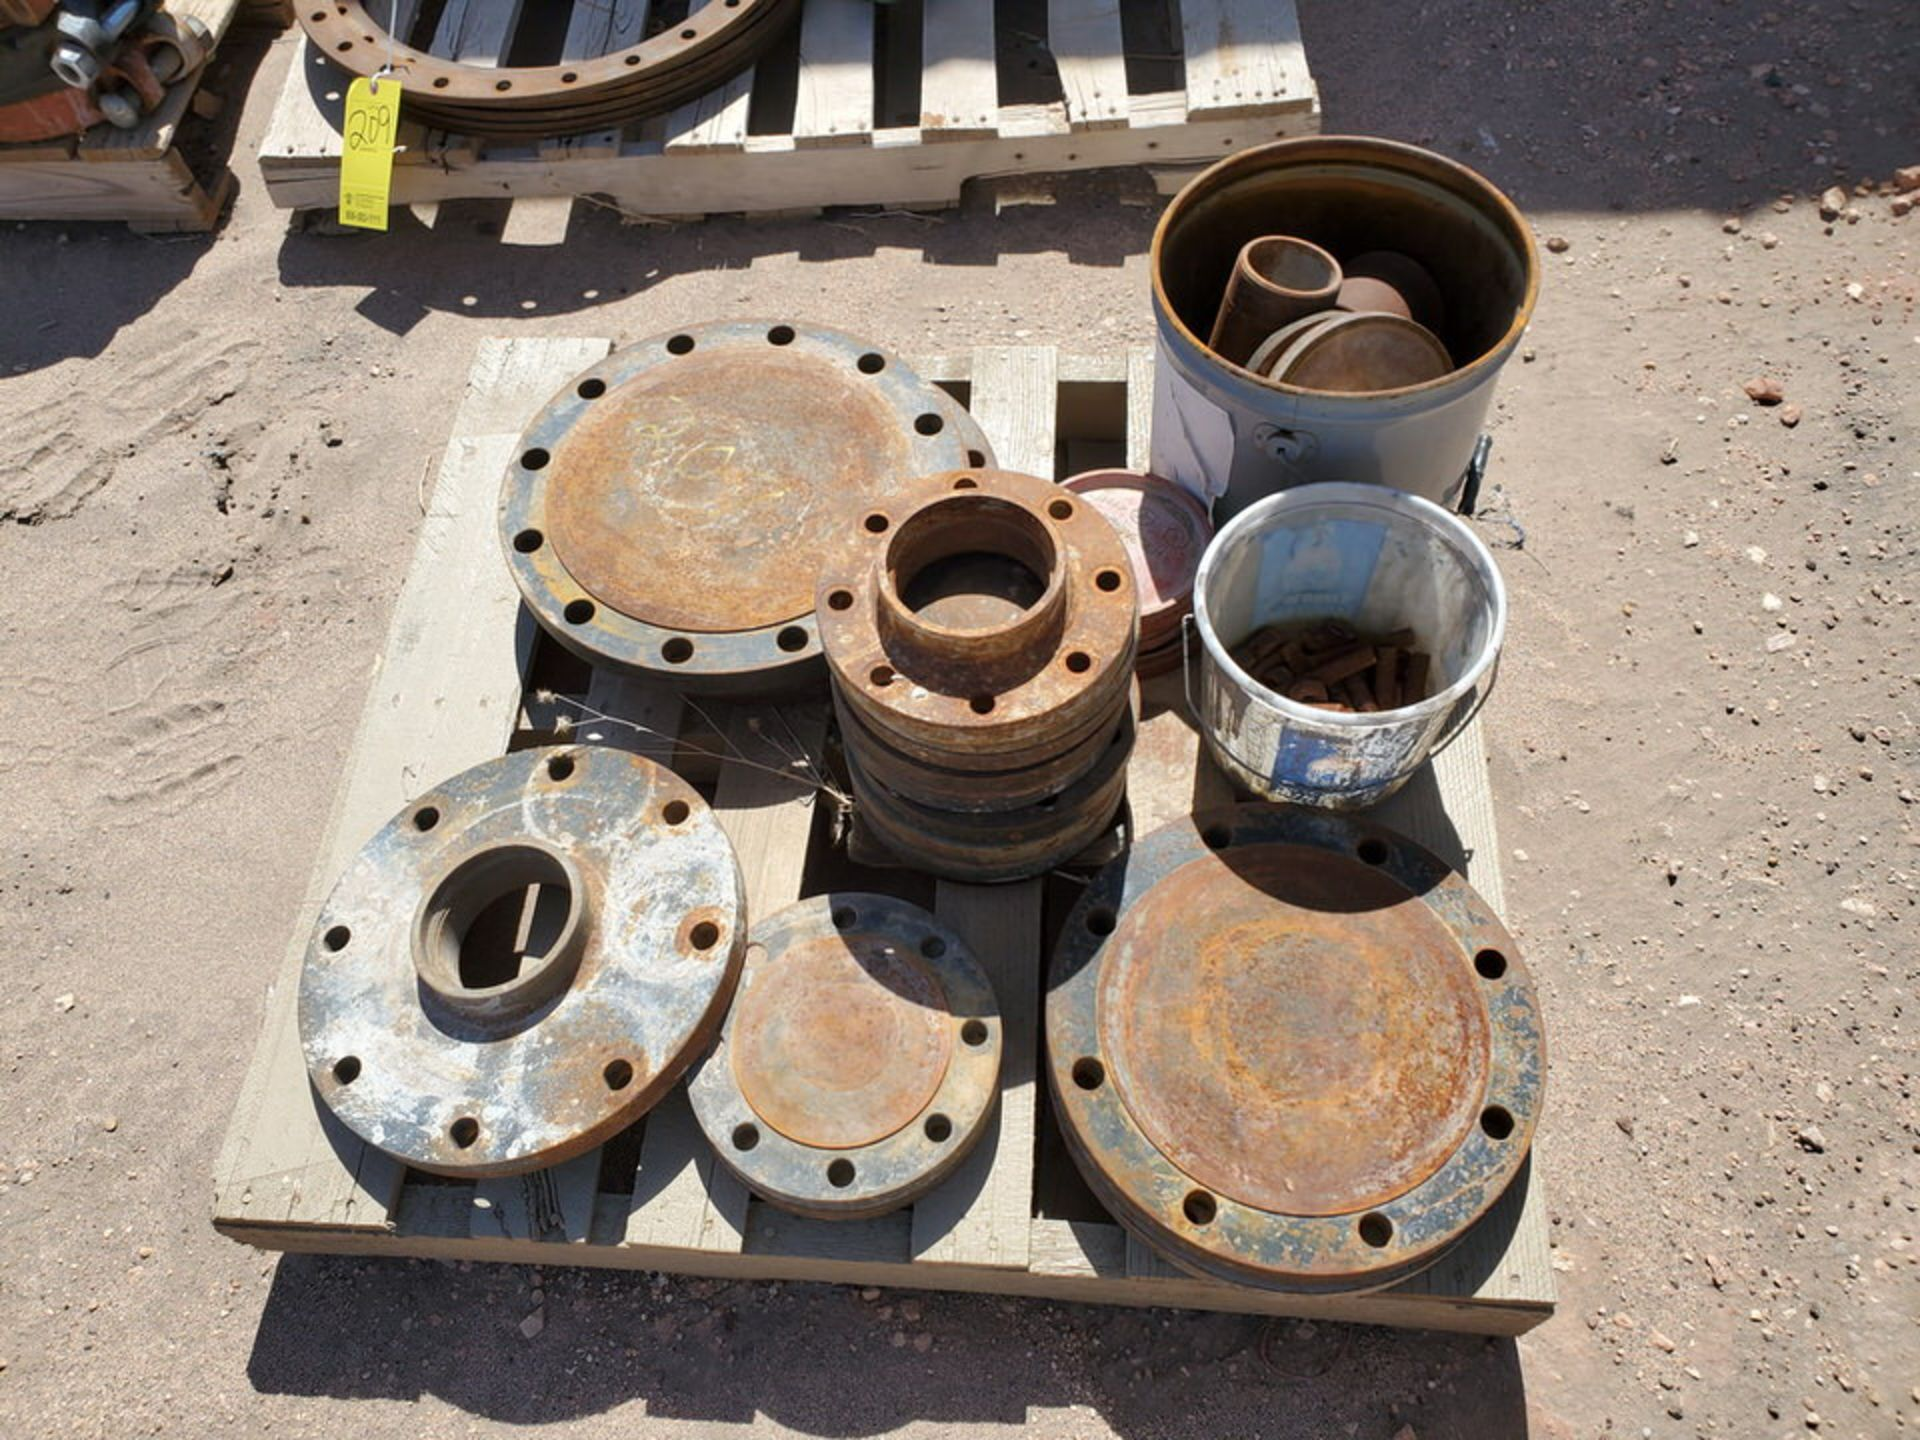 Assorted Fittings To Include But Not Limited To: Assorted Flanges, Caps, Couplings, etc.; Size - Image 4 of 14